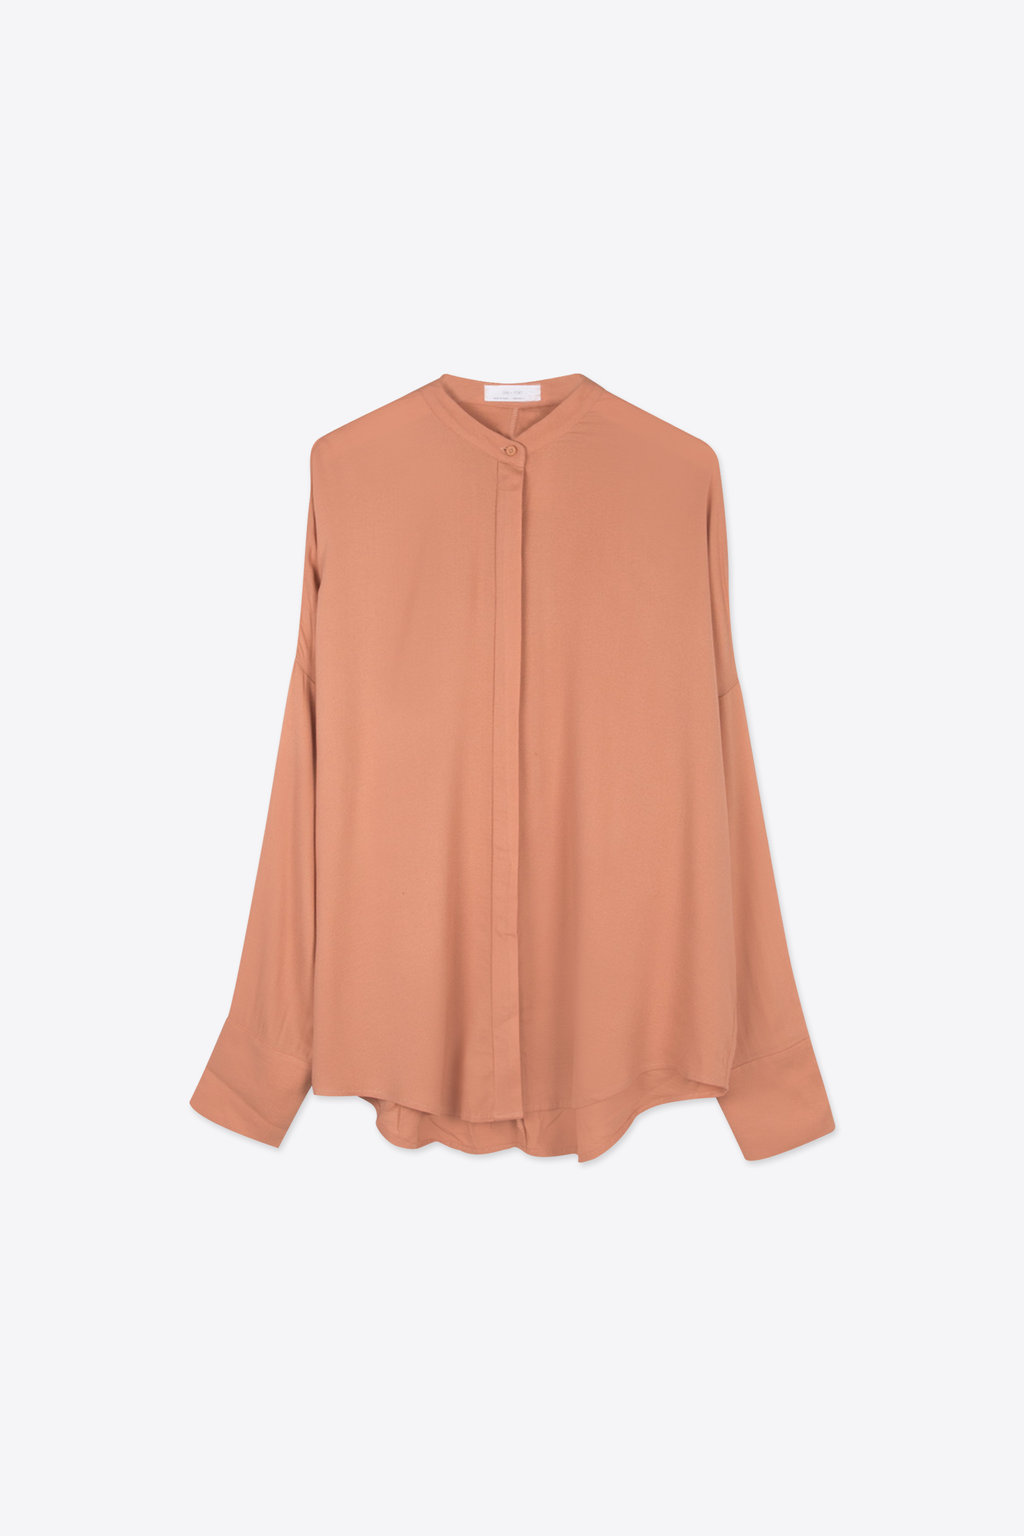 Blouse 1195 Clay 7